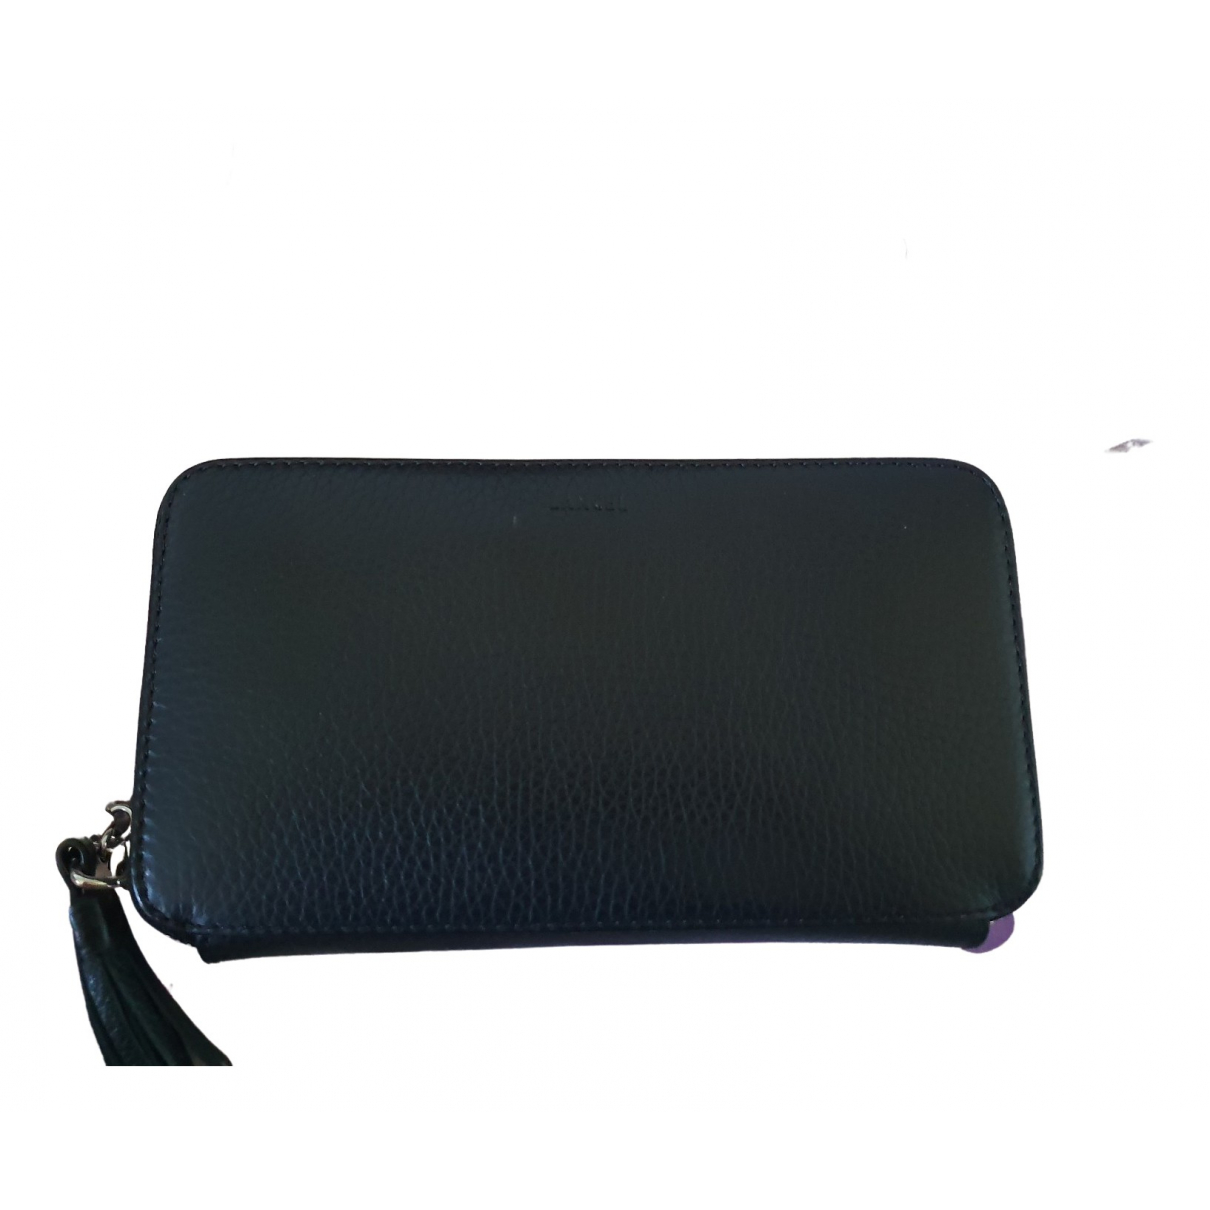 Lancel \N Black Leather wallet for Women \N